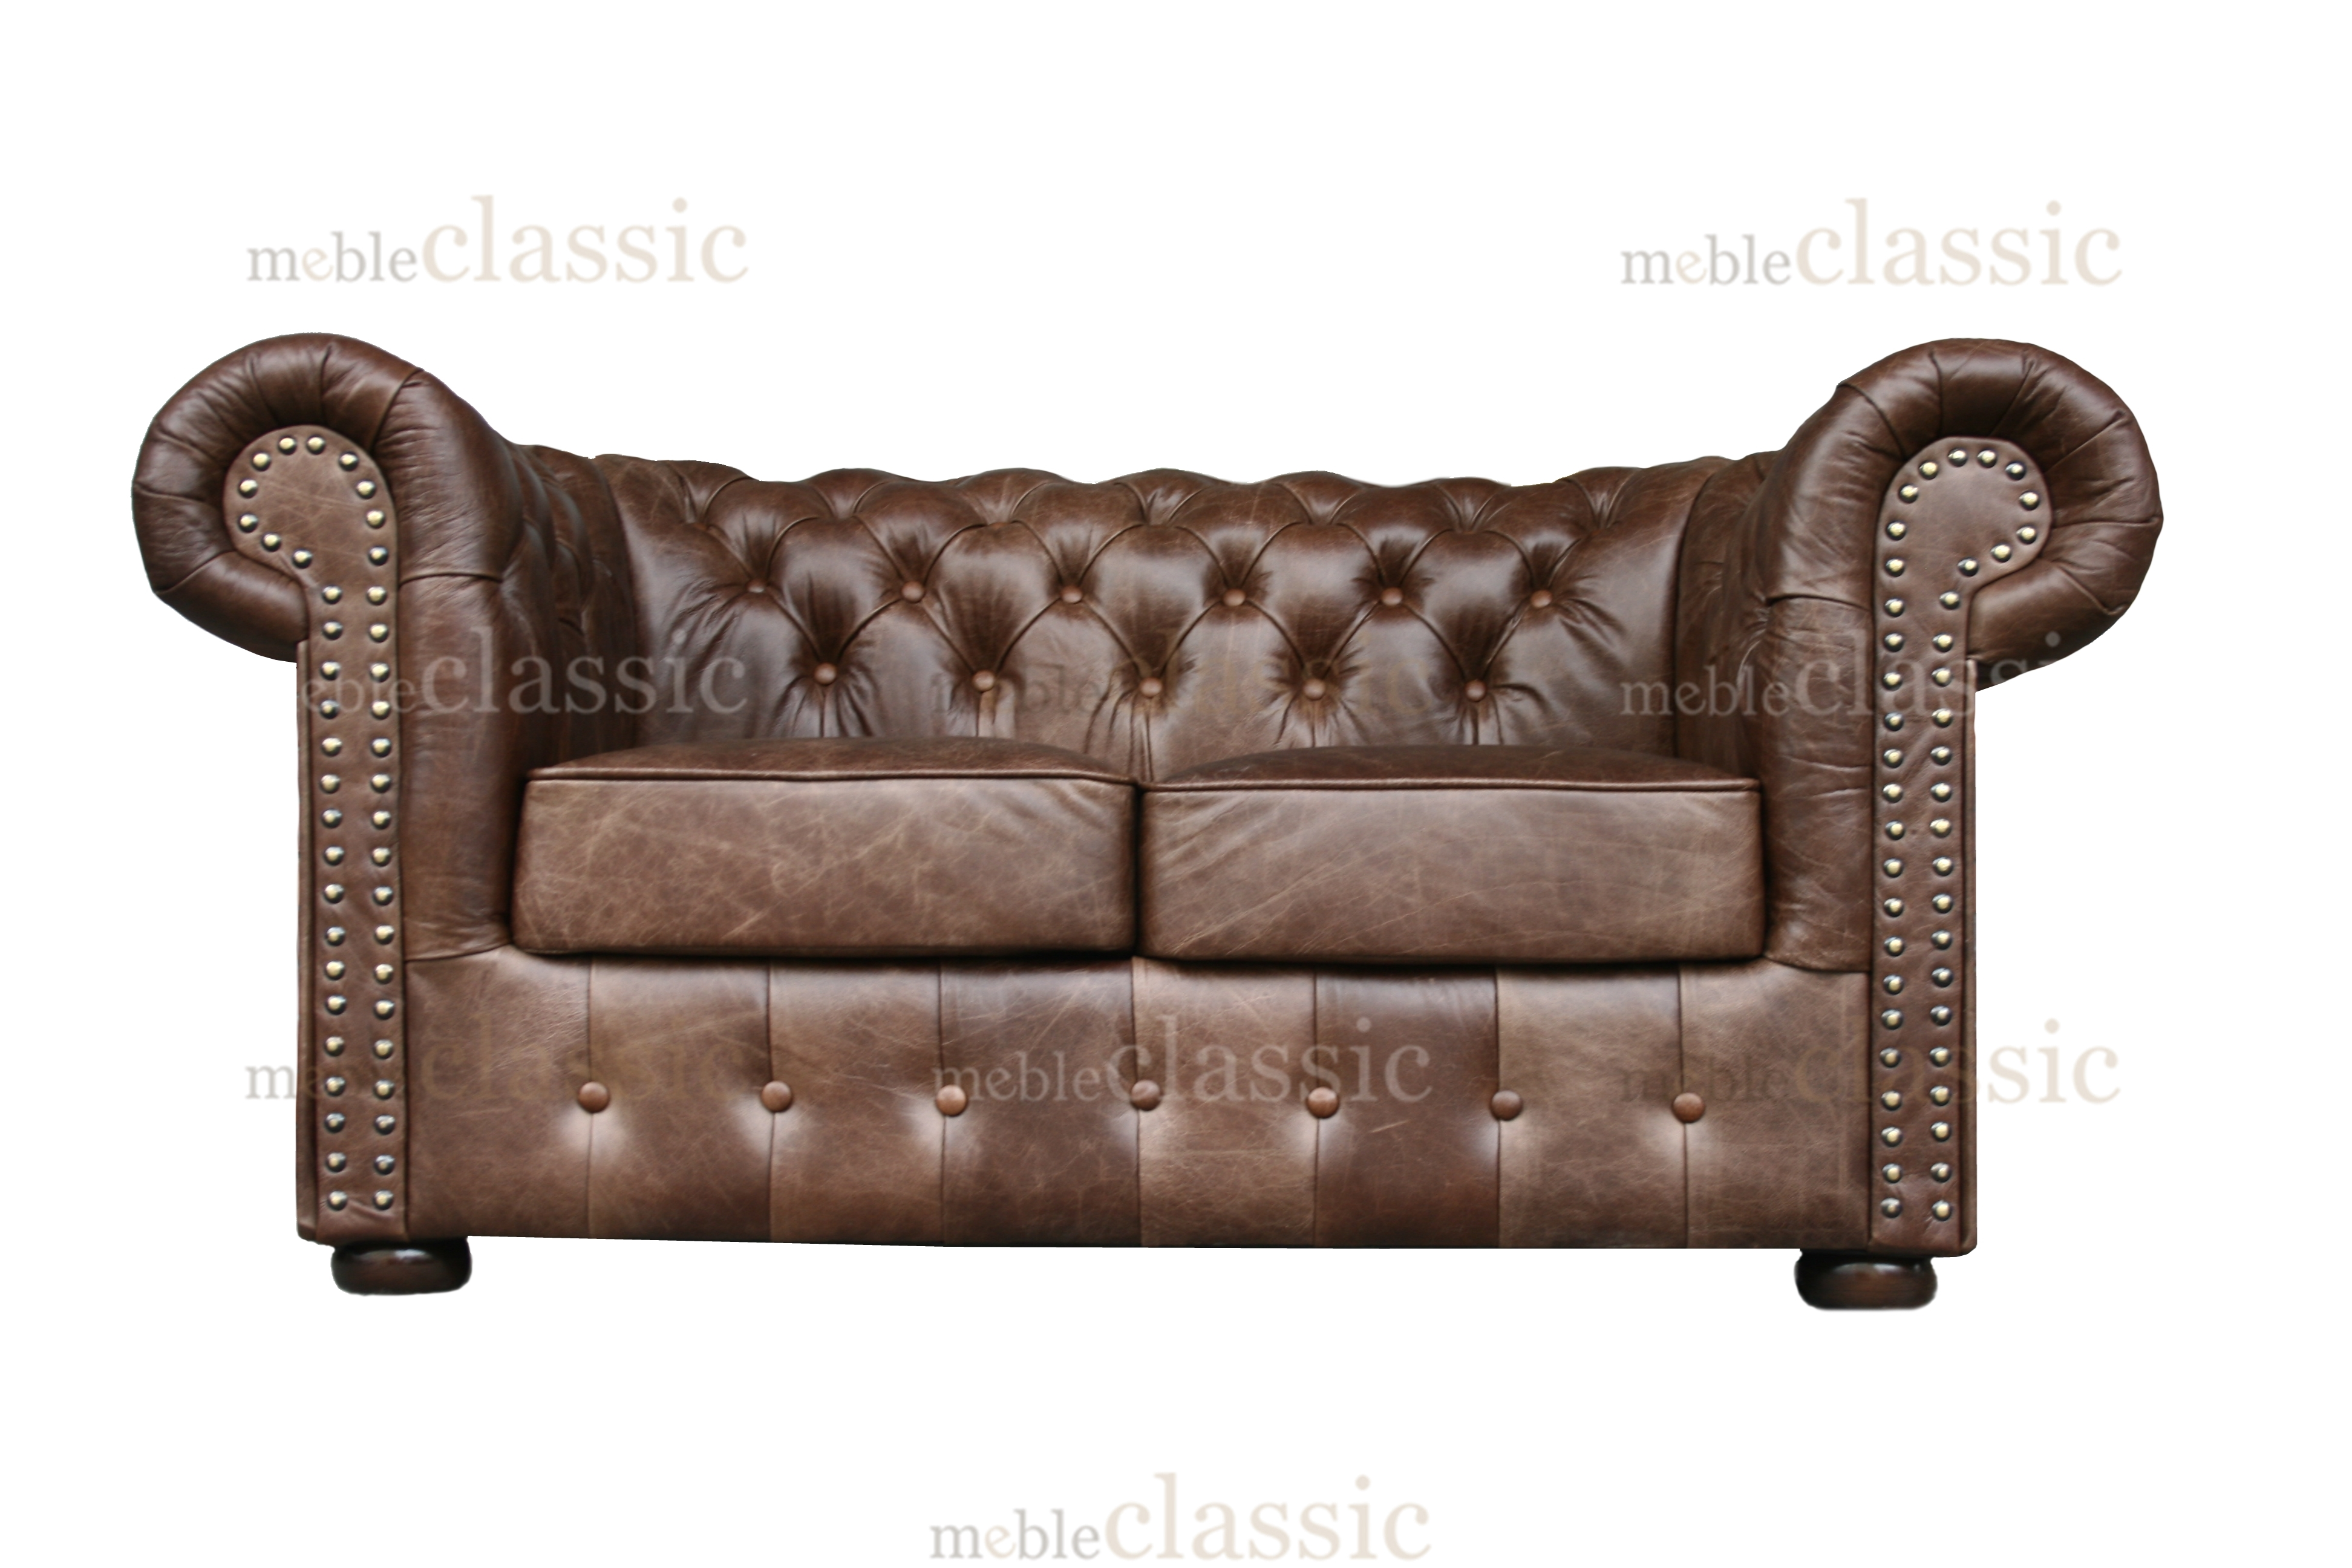 Roma Chesterfield Two Seat Sofa 100 Natural Leather